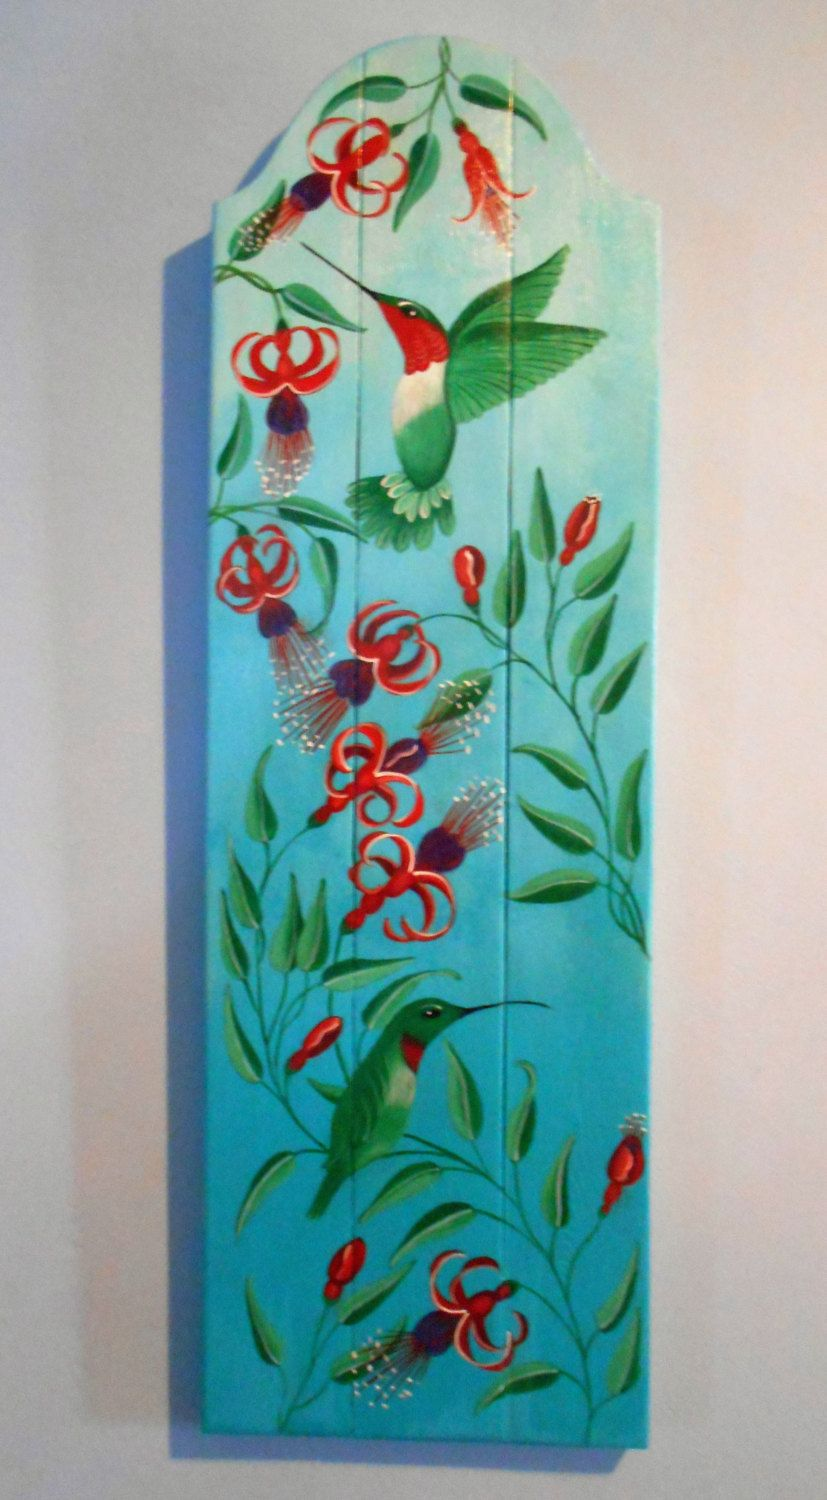 Decorative Door Hangers Hummingbird Wall Decor Plank Art Decorative Bird Plaque Flower